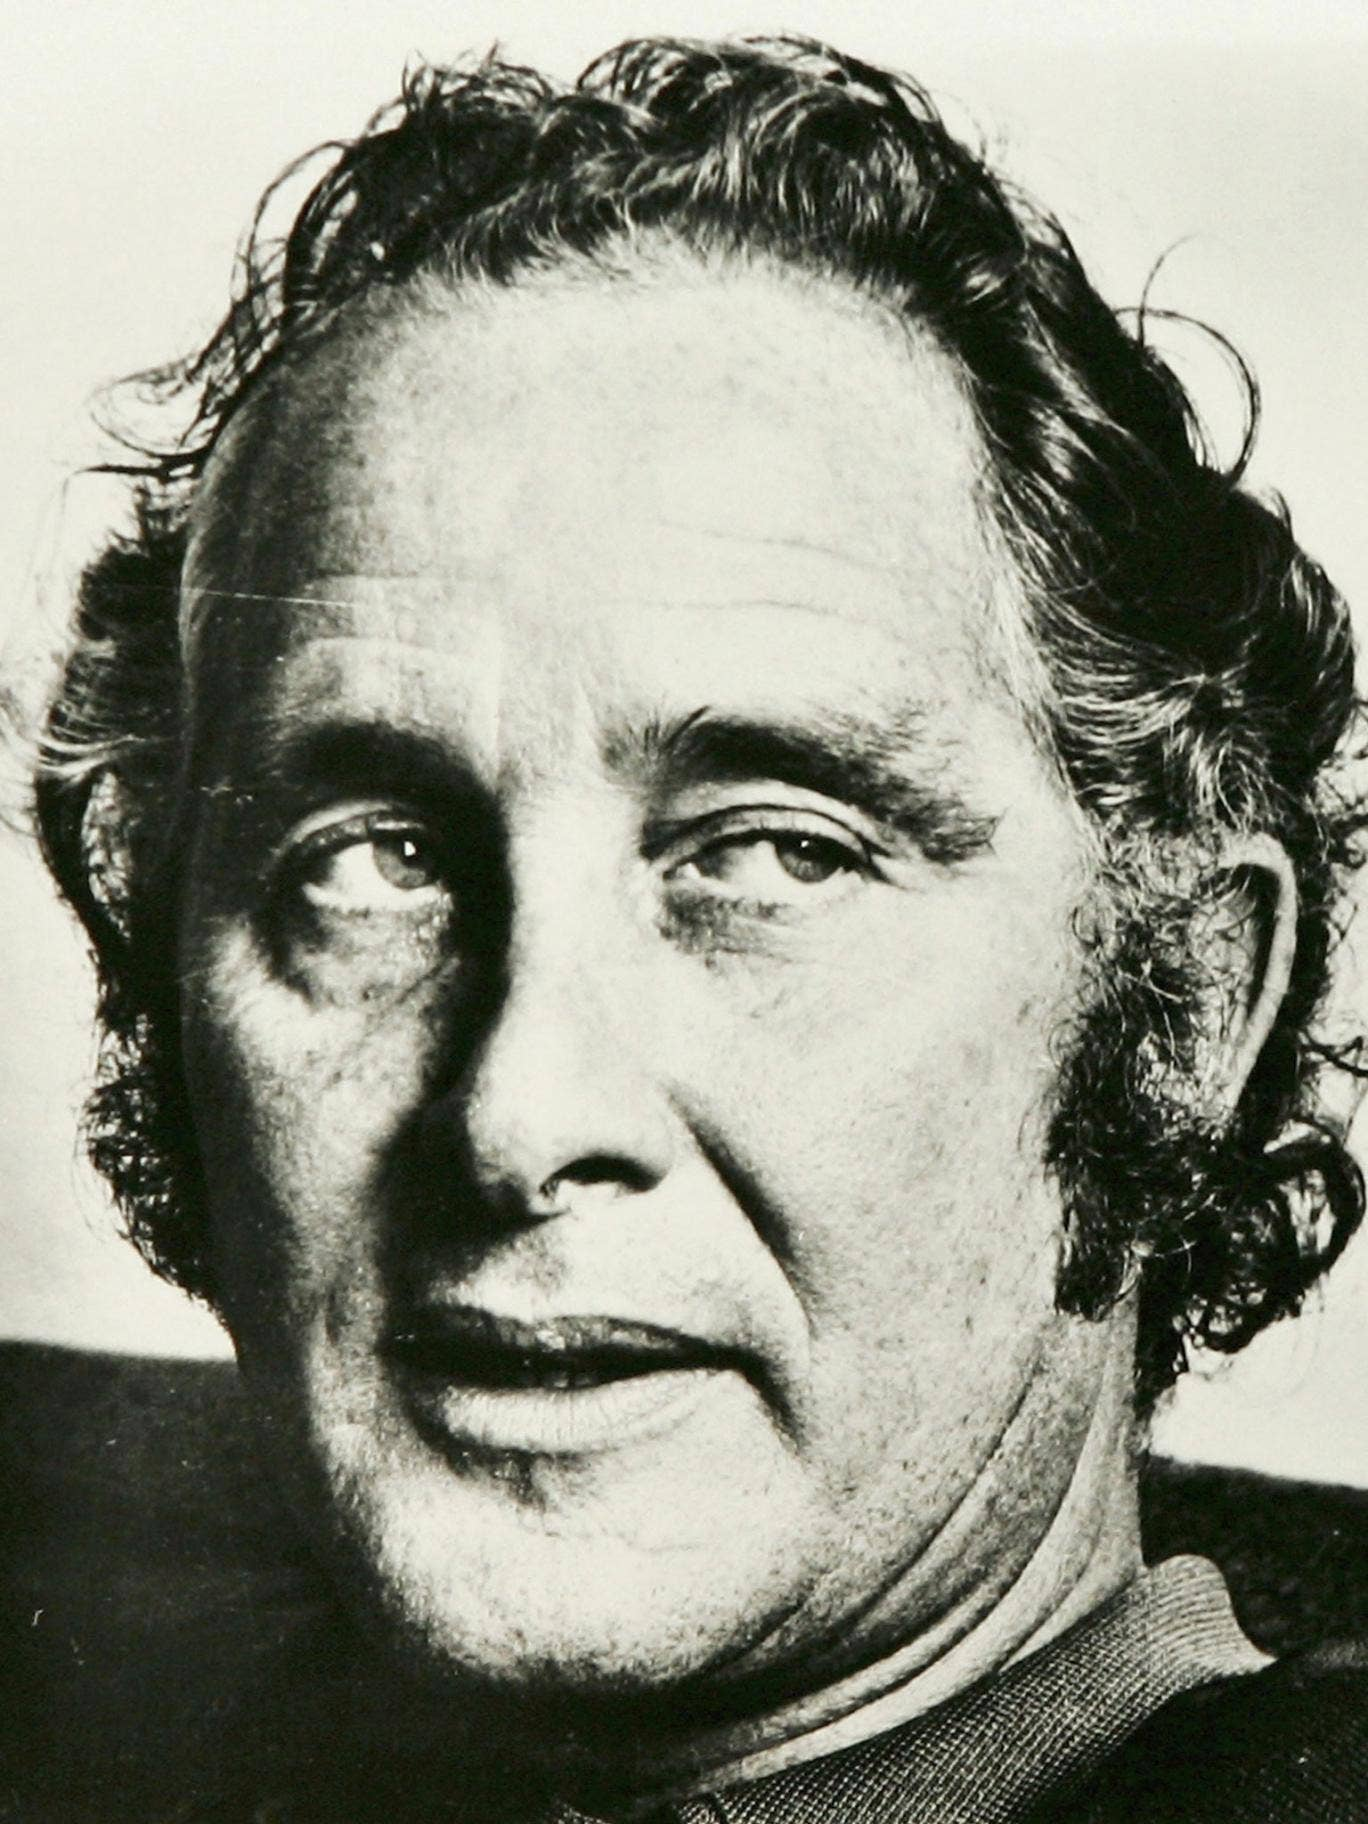 Ronnie Biggs was born in August. A new report says that children born at the start of the year in September fare better in exams than those born in August